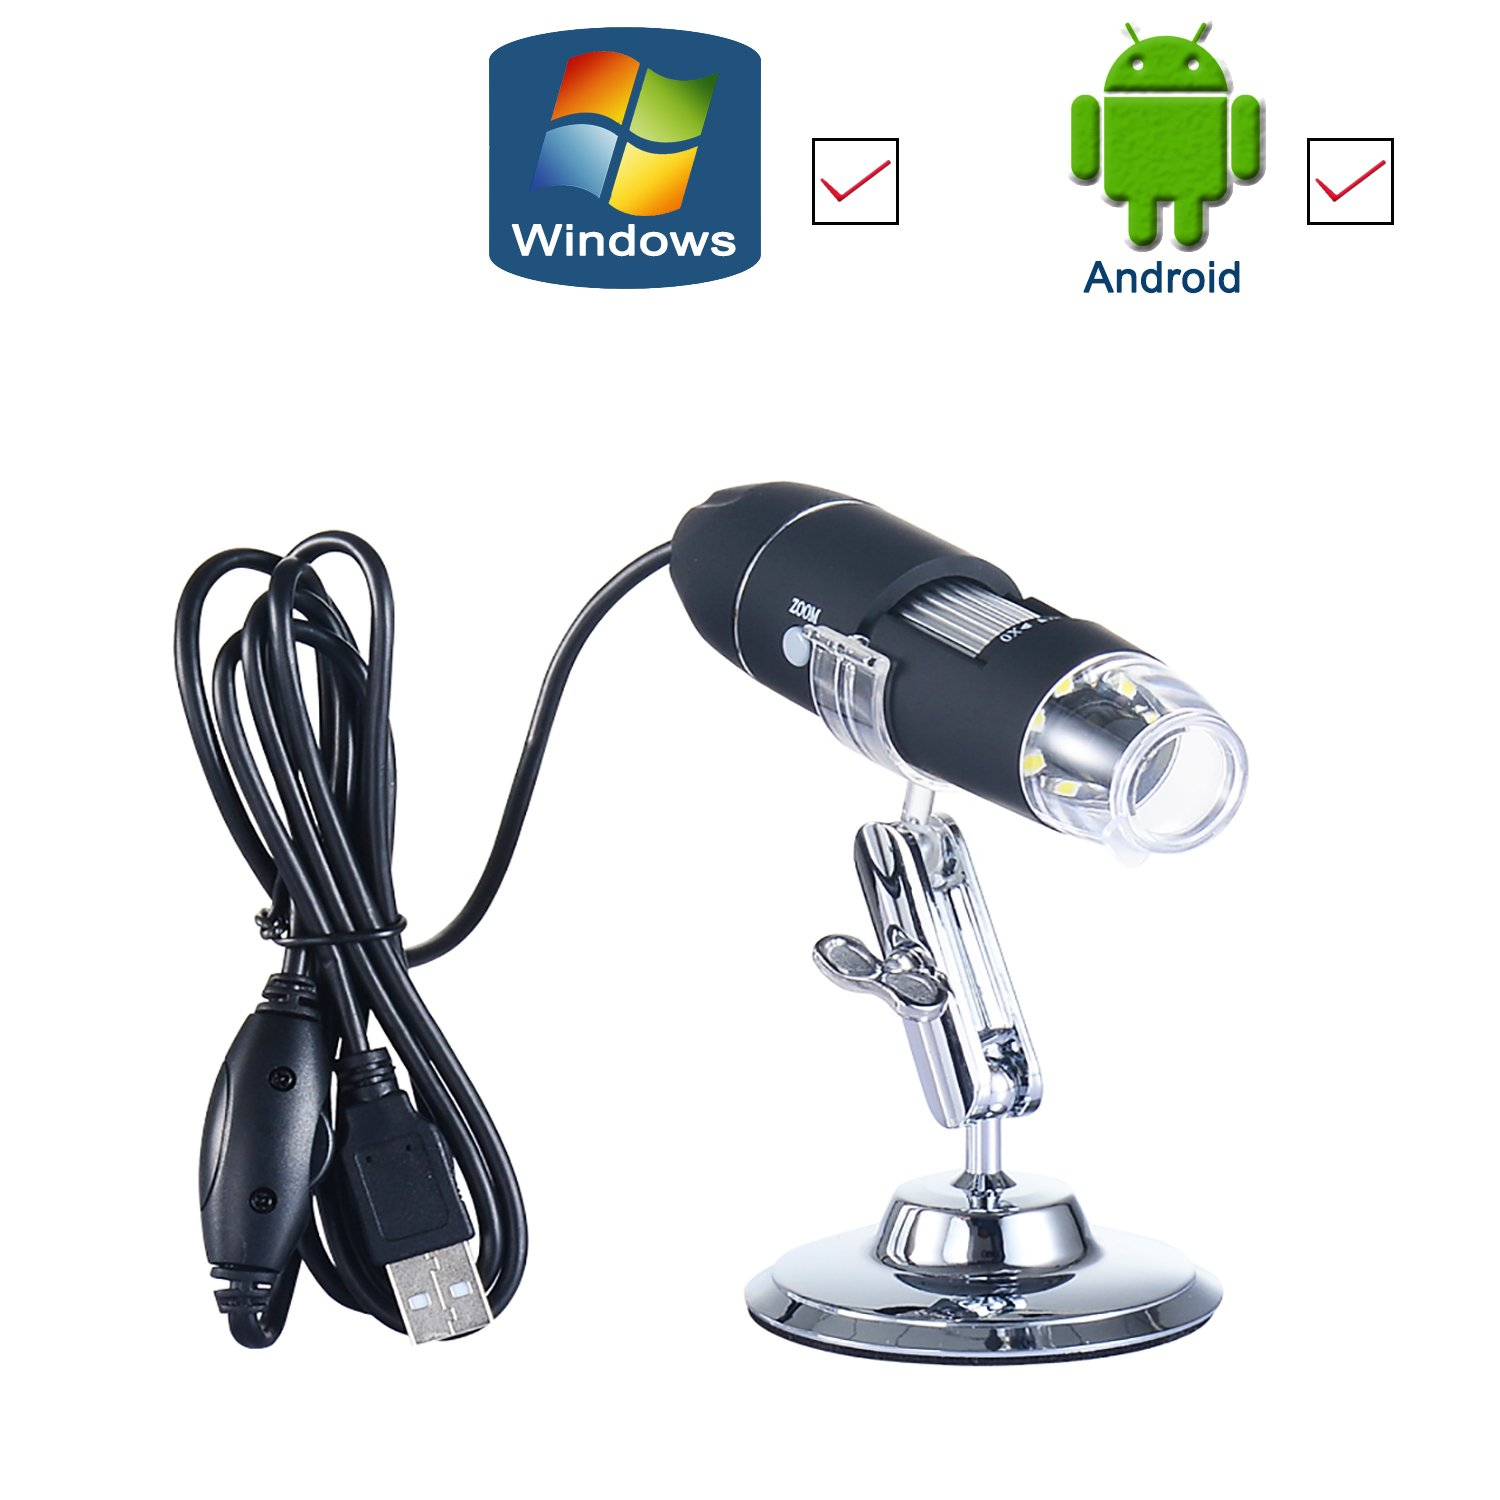 USB Digital Microscope- 1000X Magnification Endoscope- Electronic Magnifier- 2.0MP HD Zoom Lens Camera (8-LED) Windows-Android-Vista-Linux(OTG Enclosed)